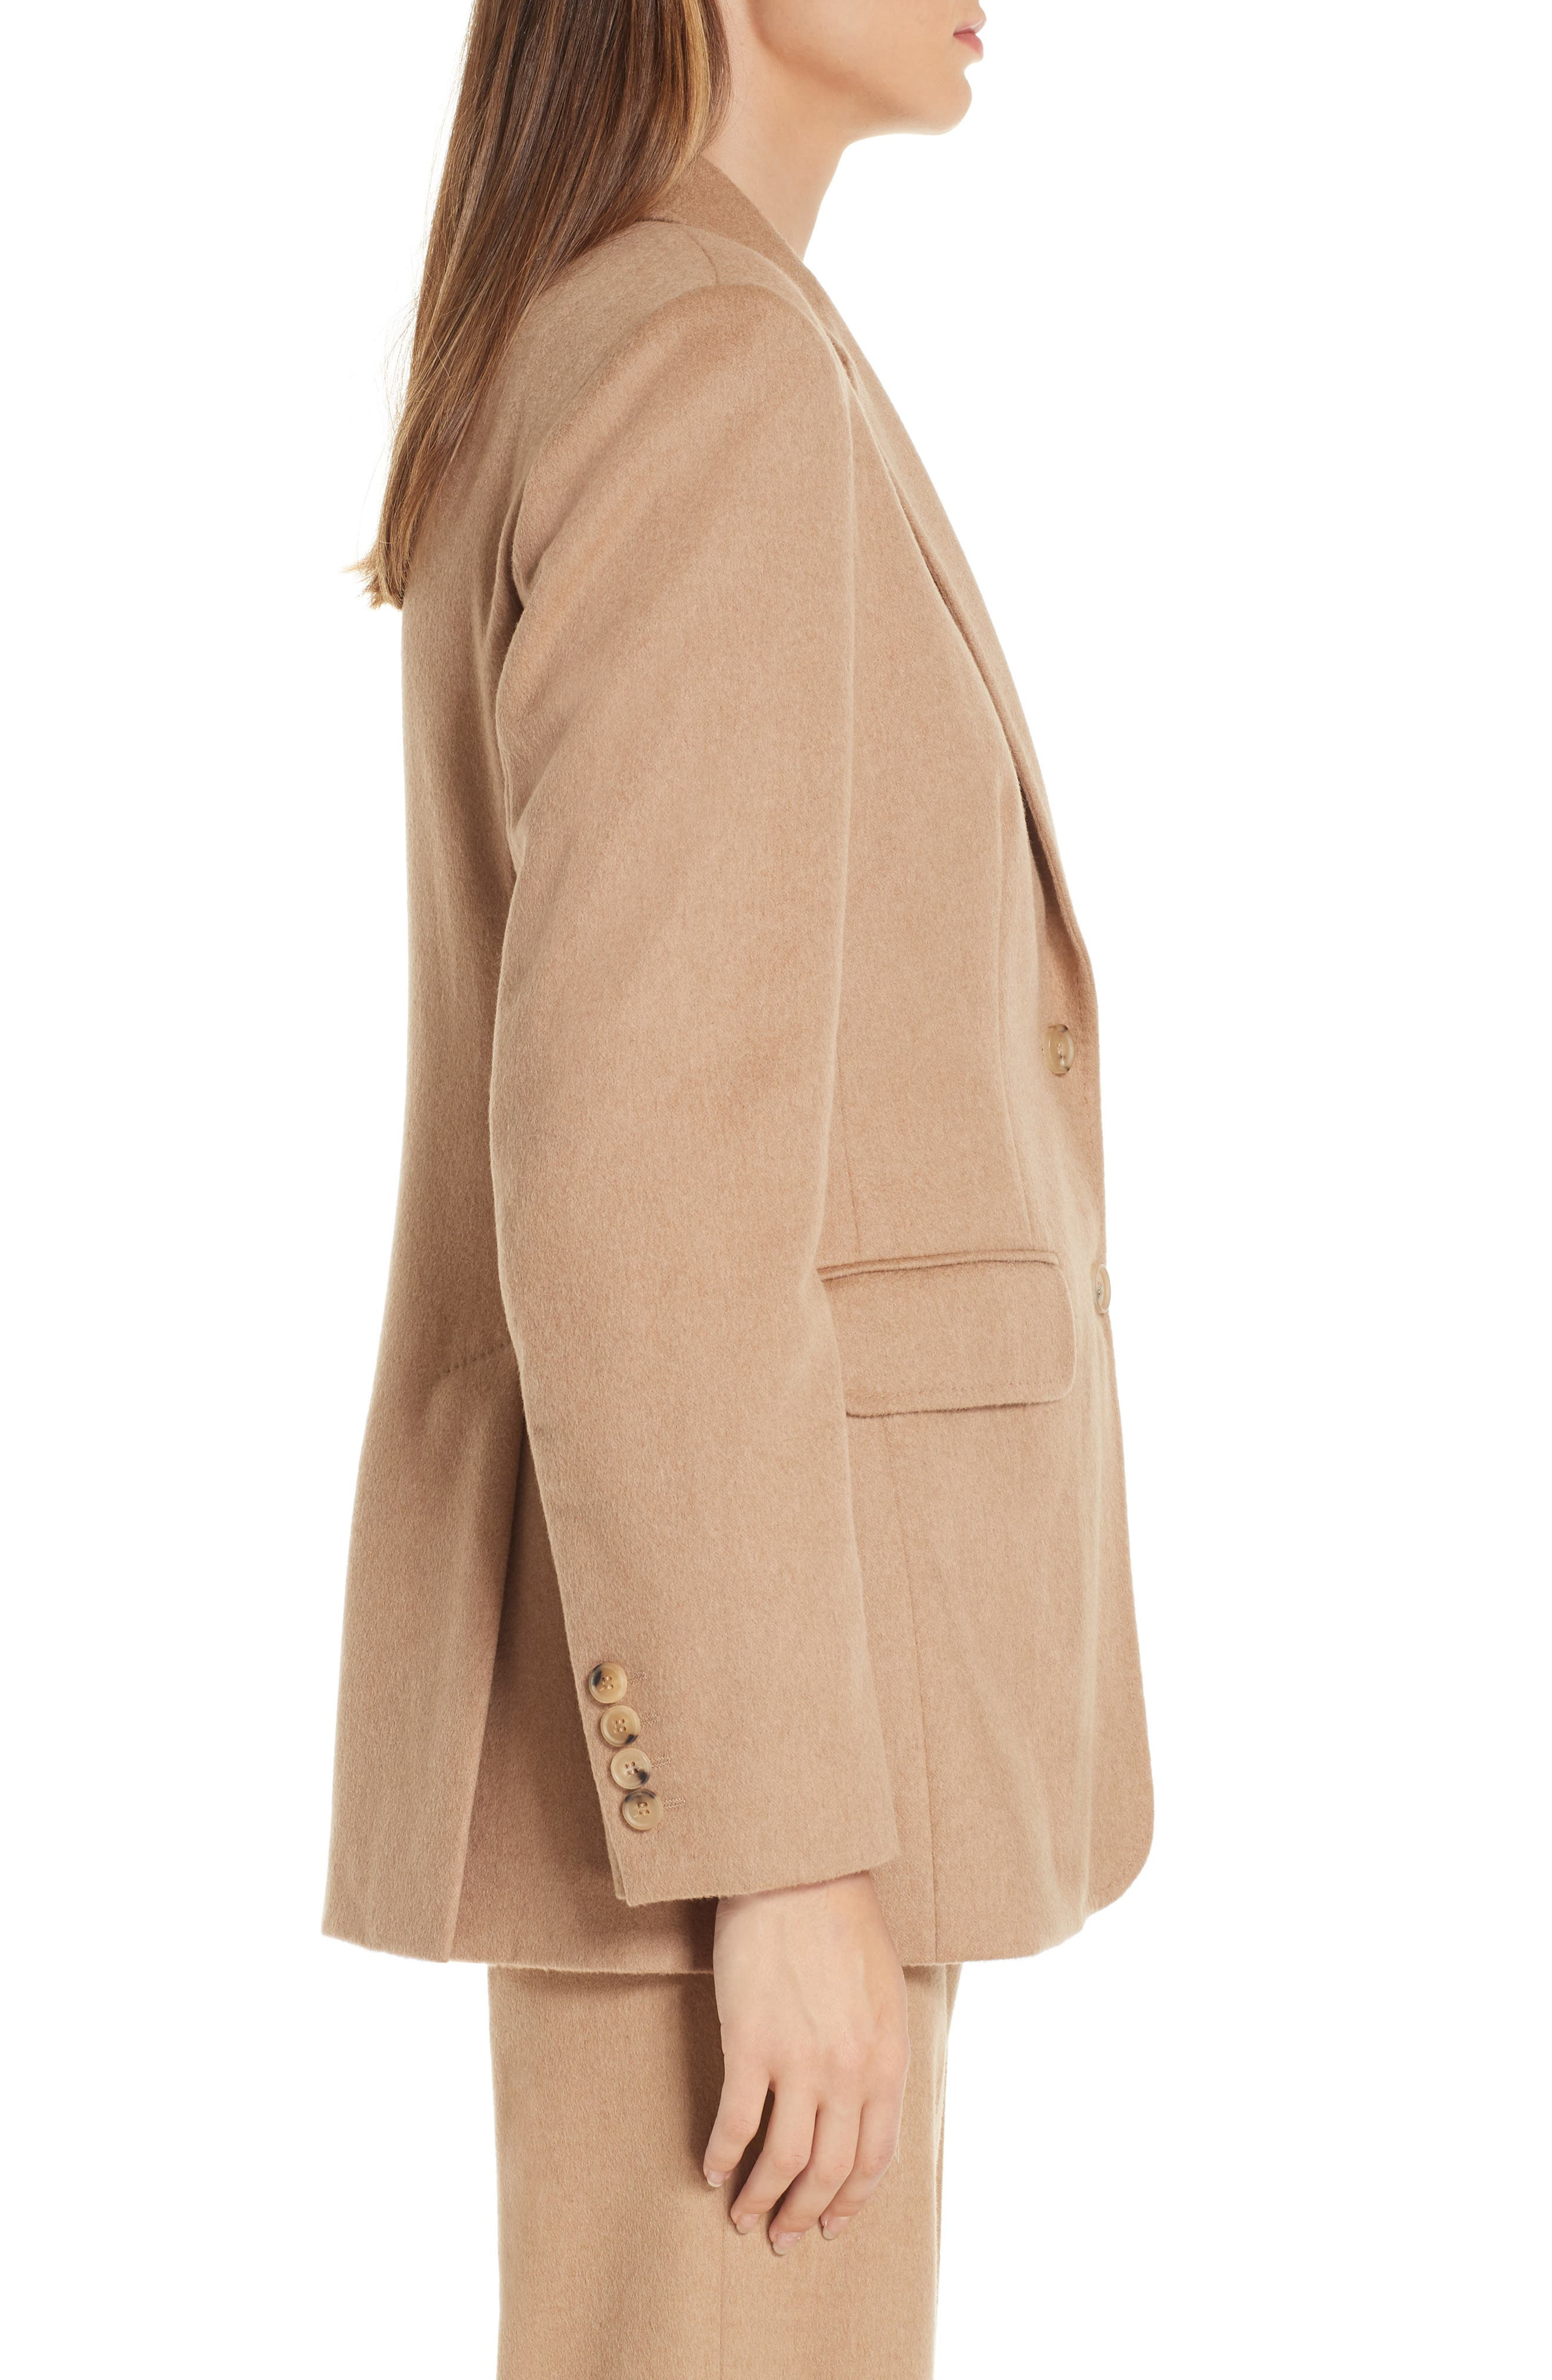 Panteon Camel Hair Jacket,                             Alternate thumbnail 3, color,                             232